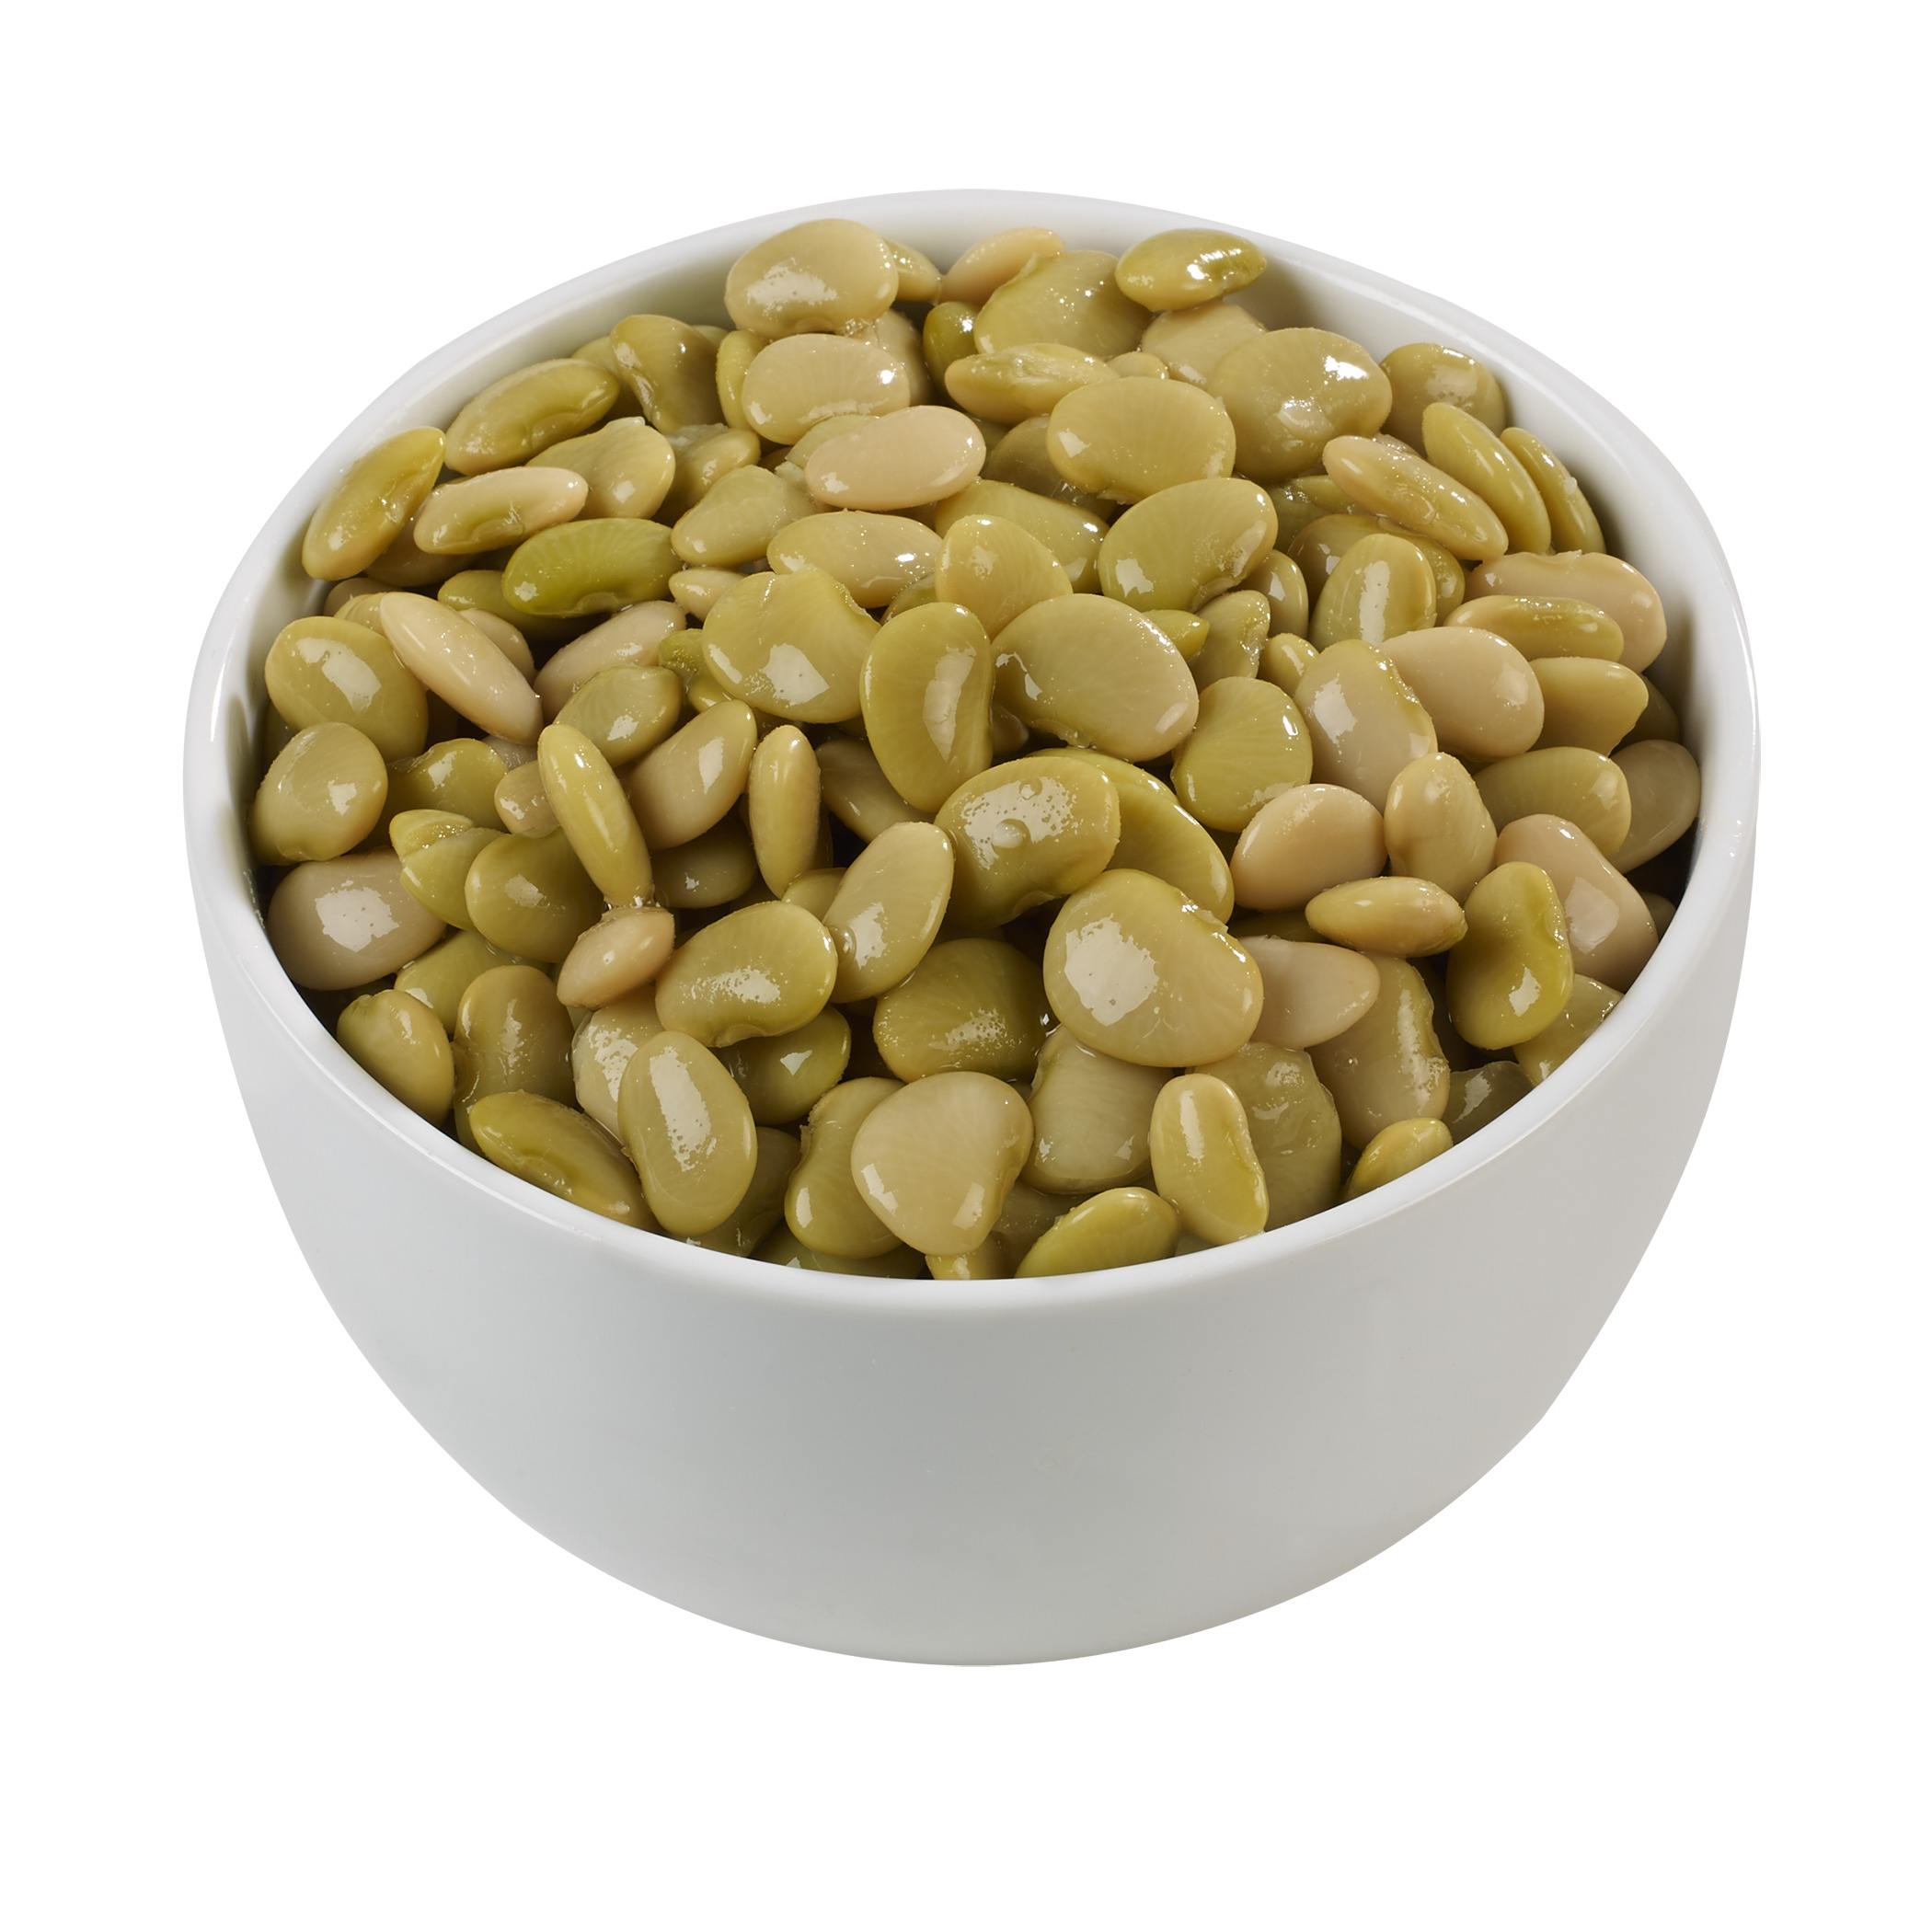 BEST QUALITY LIMA BEANS